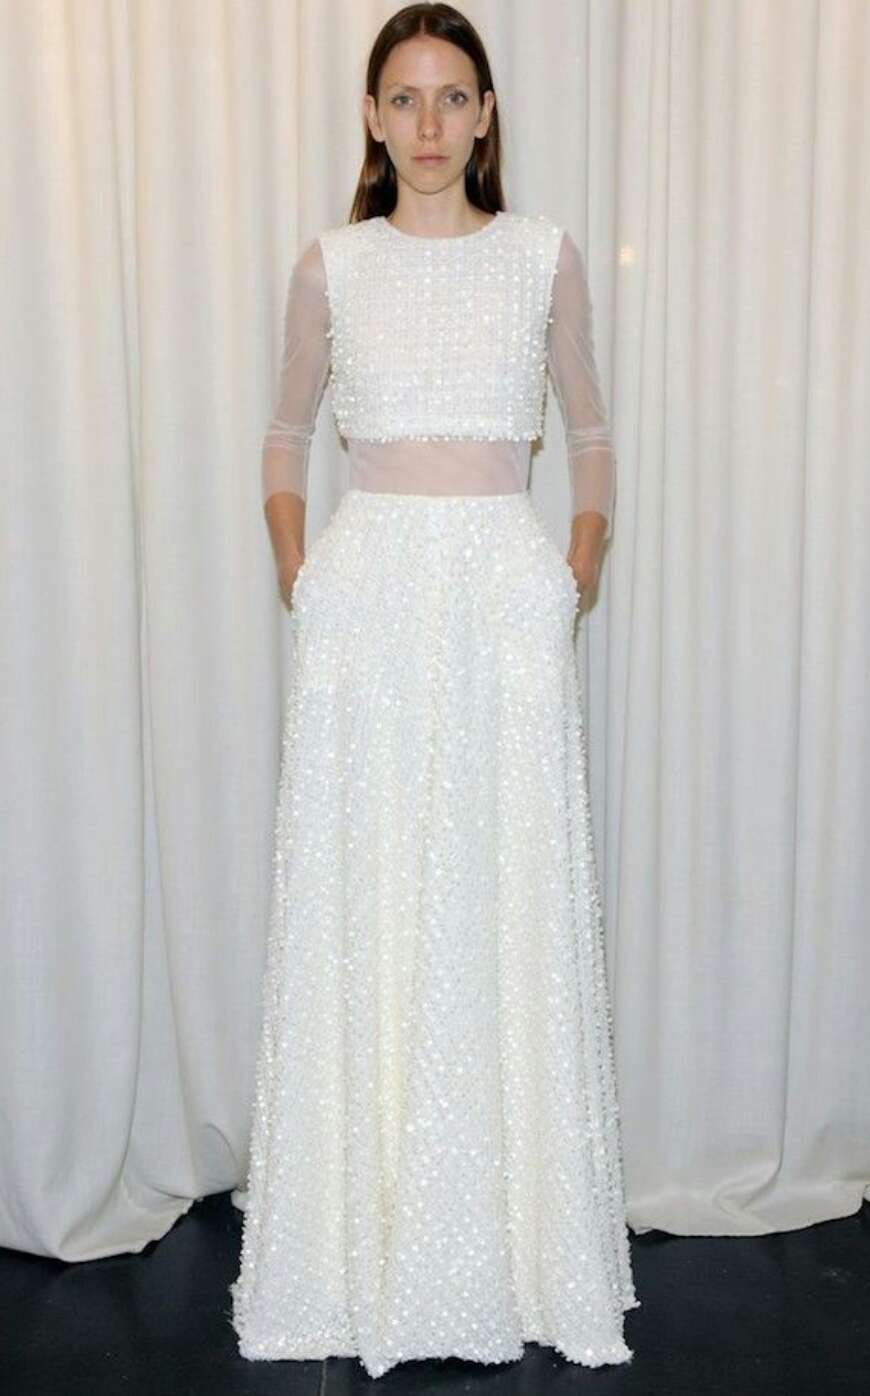 DARE TO BARE BRIDES: HOW TO WEAR A CROP TOP WEDDING DRESS